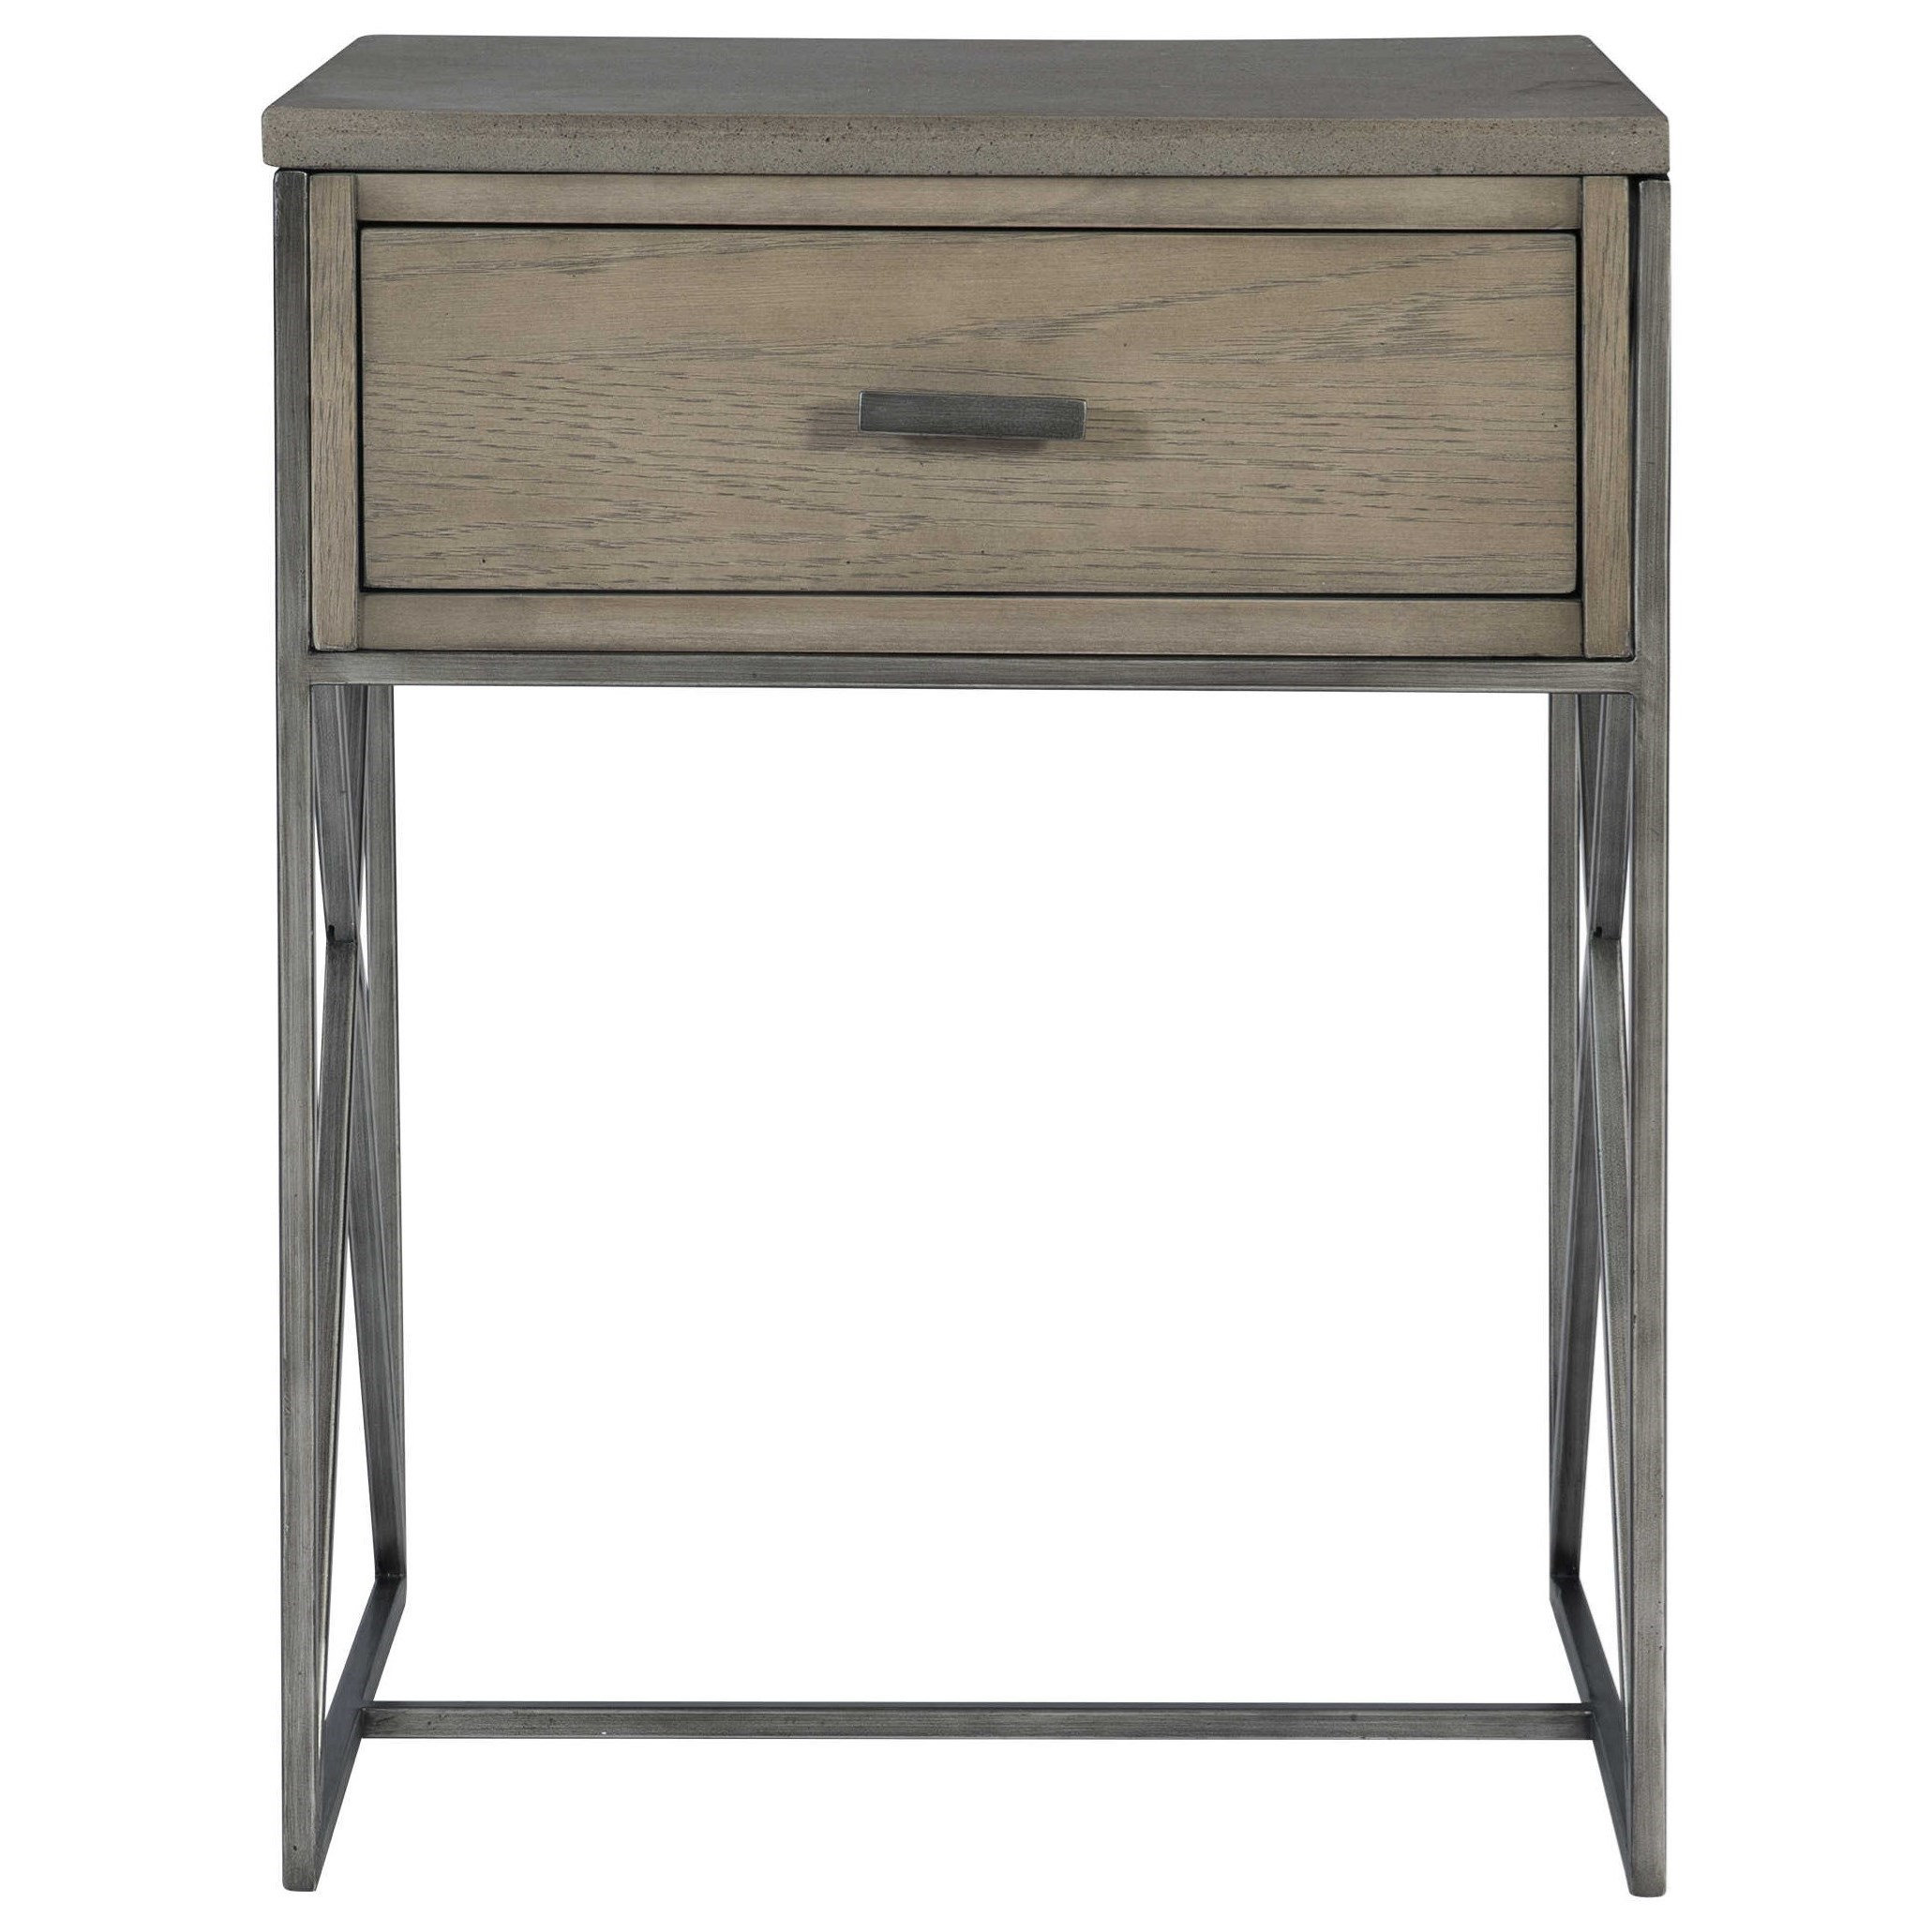 Accent Furniture - Occasional Tables Cartwright Gray Side Table by Uttermost at Suburban Furniture